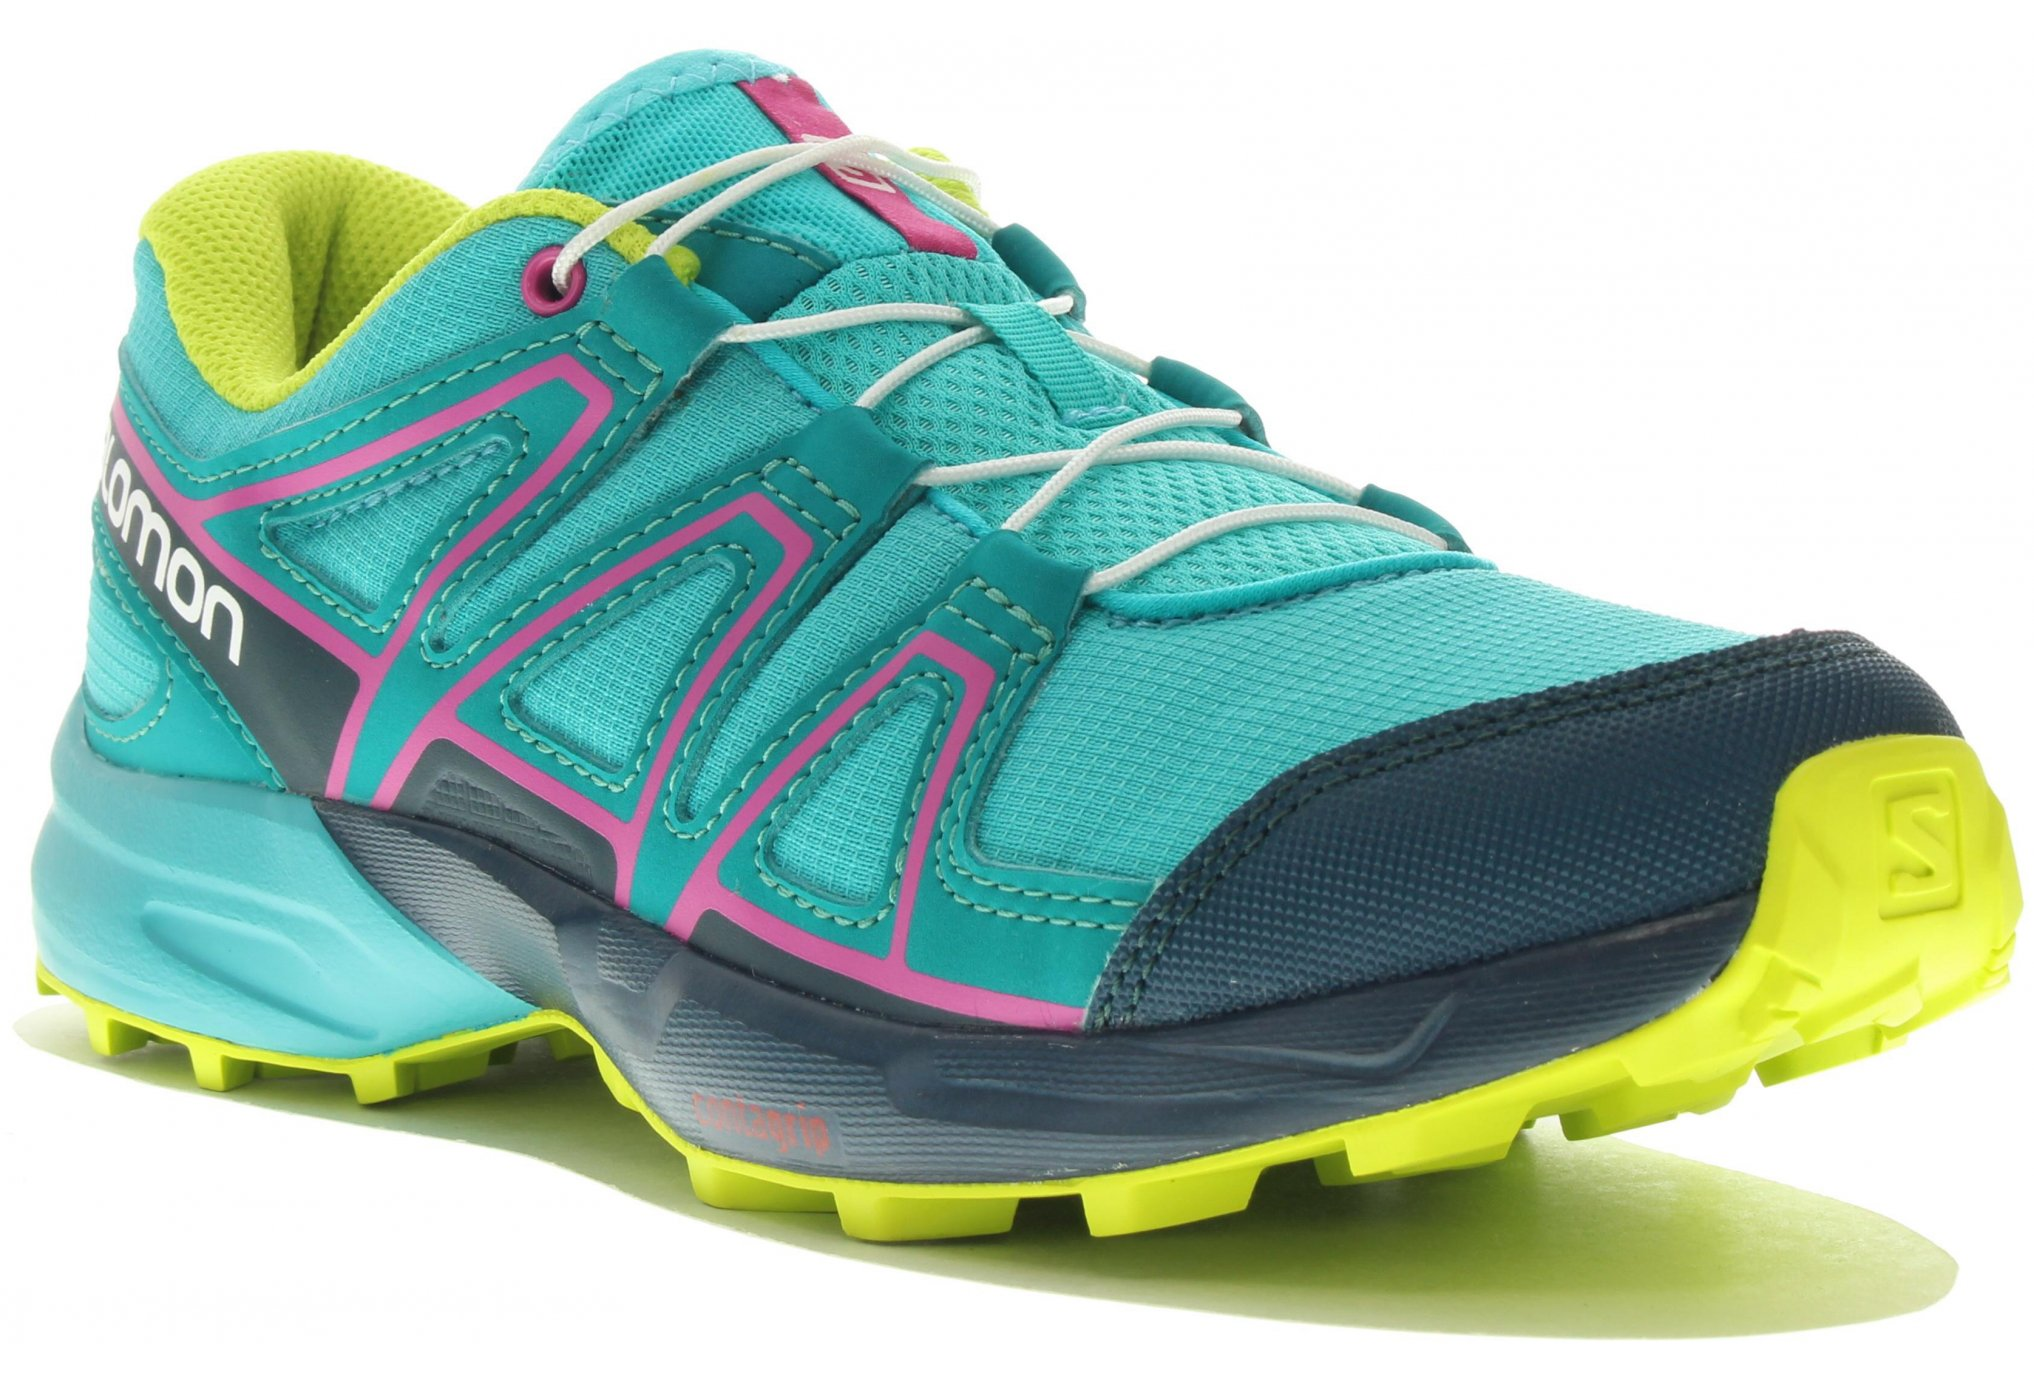 Arqe0r Speedcross Salomon Femme Resathlon Chaussures Running Junior UxwfqCY